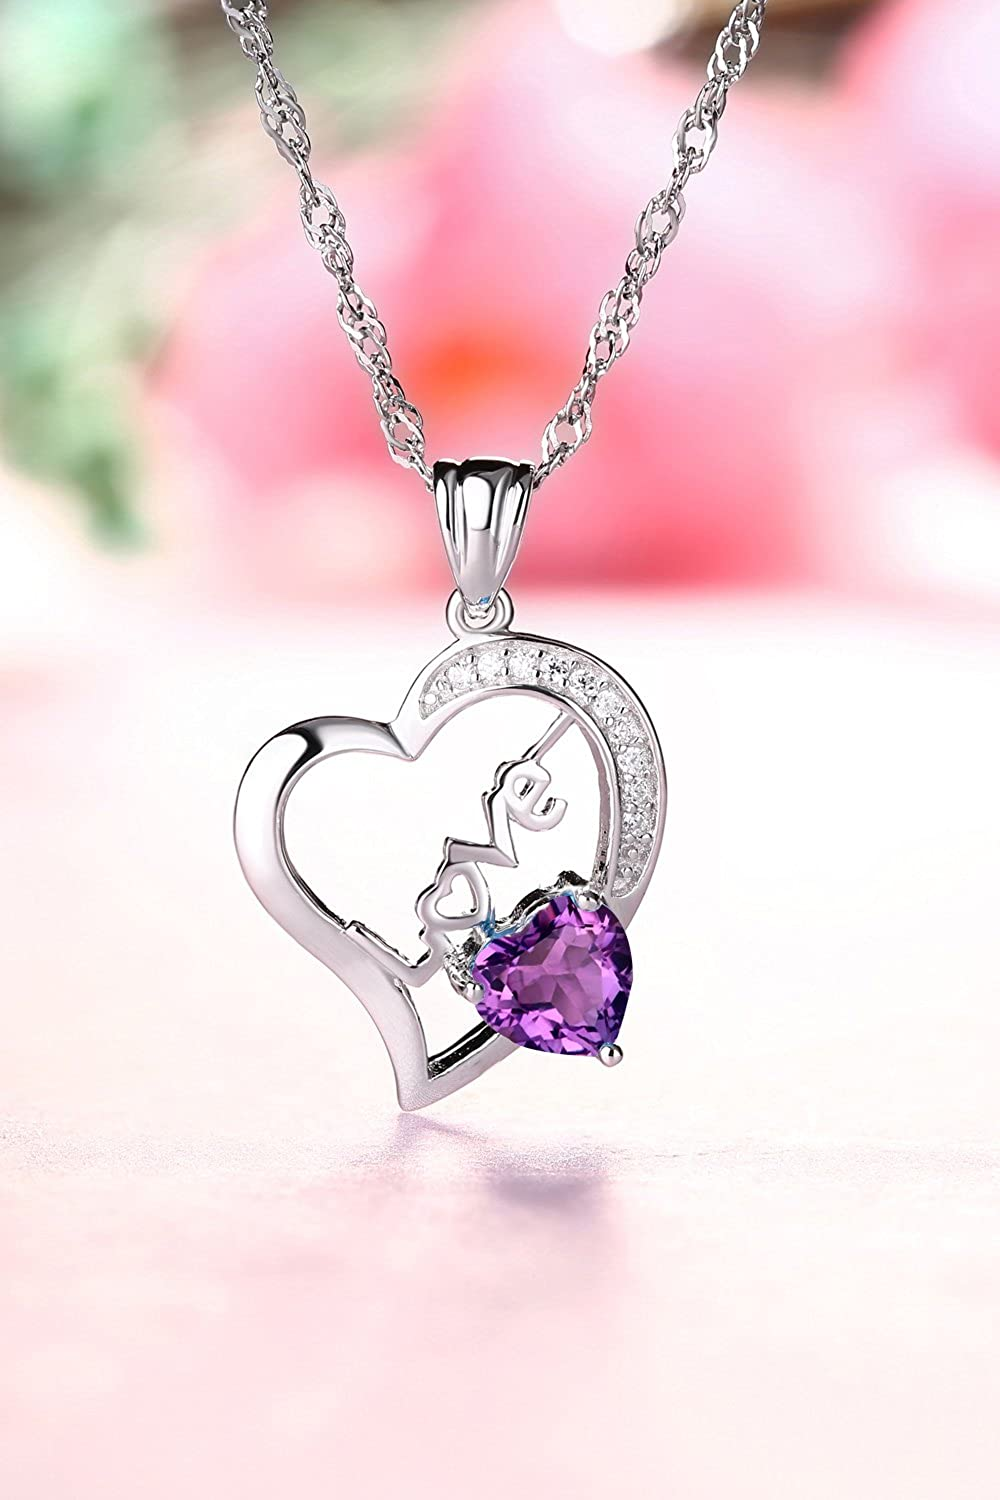 Fine Jewelry for Women Sterling Sliver and Rose Gold Plated Pendant Necklace Bracelet and Ring